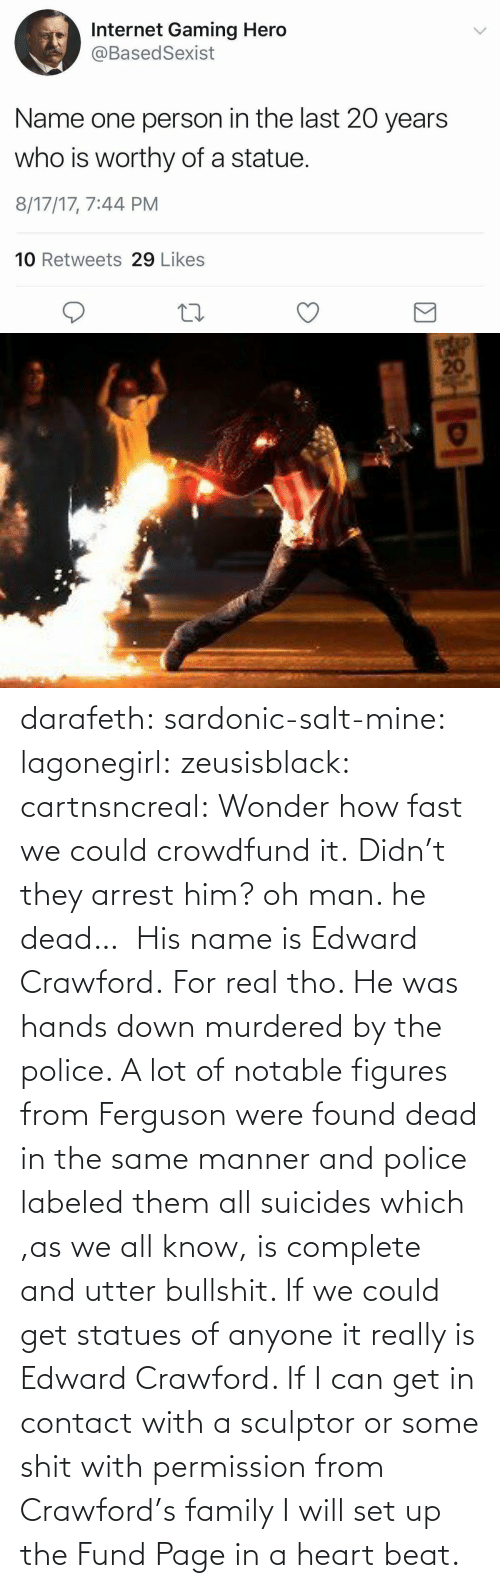 Wonder: darafeth: sardonic-salt-mine:  lagonegirl:  zeusisblack:  cartnsncreal:   Wonder how fast we could crowdfund it.    Didn't they arrest him?  oh man. he dead…   His name is Edward Crawford.   For real tho. He was hands down murdered by the police. A lot of notable figures from Ferguson were found dead in the same manner and police labeled them all suicides which ,as we all know, is complete and utter bullshit.  If we could get statues of anyone it really is Edward Crawford. If I can get in contact with a sculptor or some shit with permission from Crawford's family I will set up the Fund Page in a heart beat.